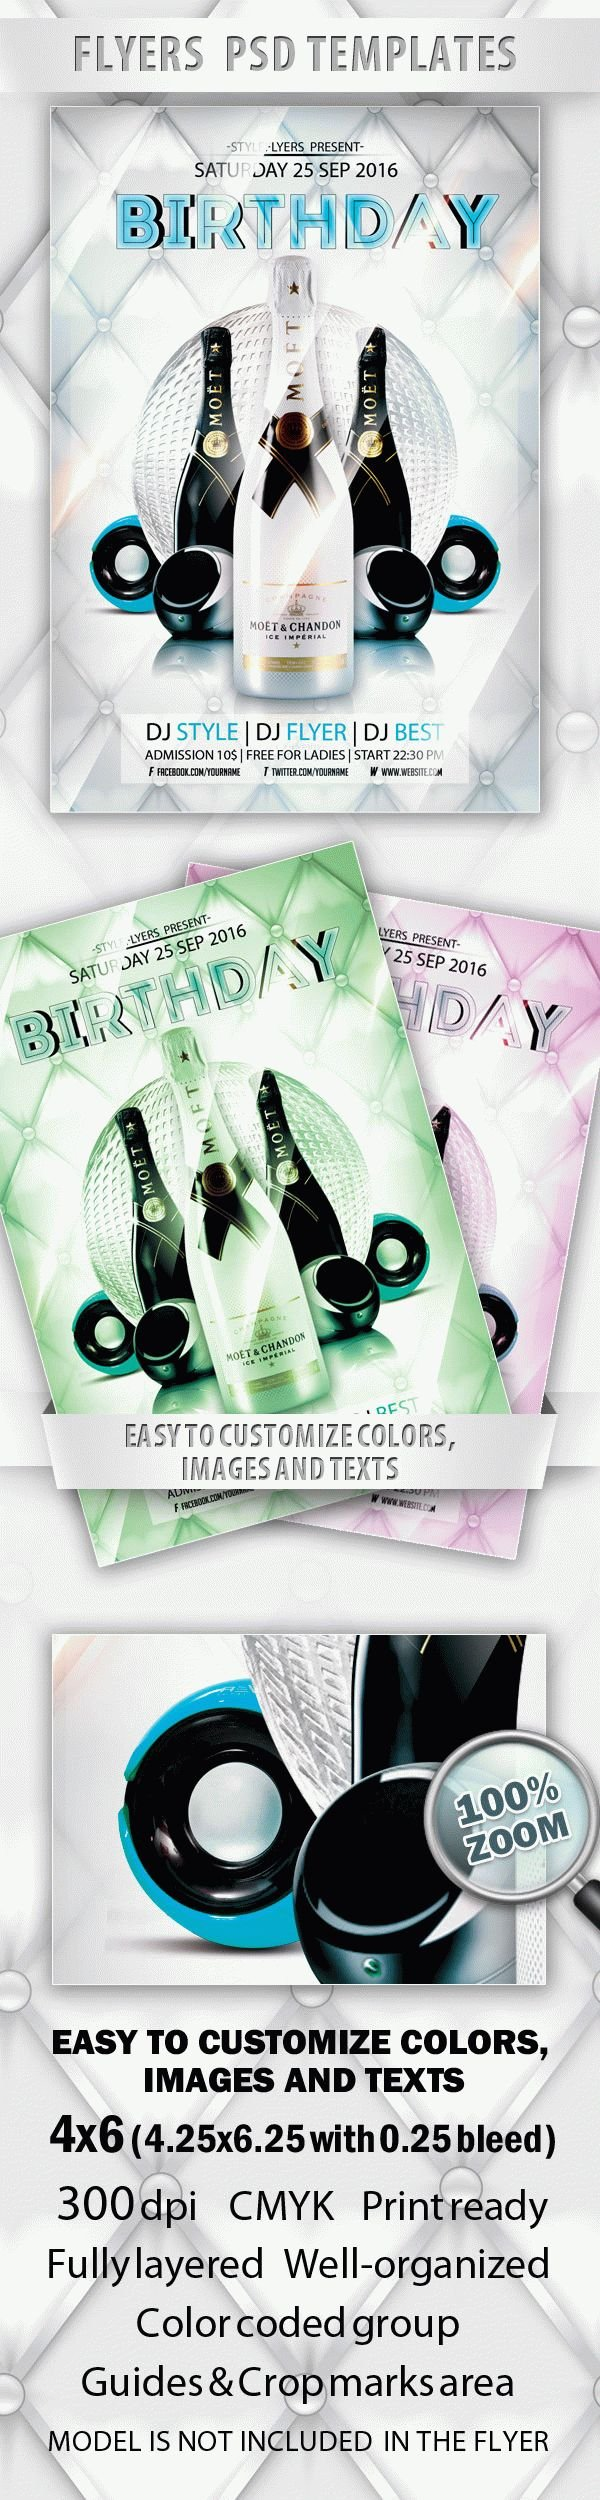 Birthday Free PSD Flyer